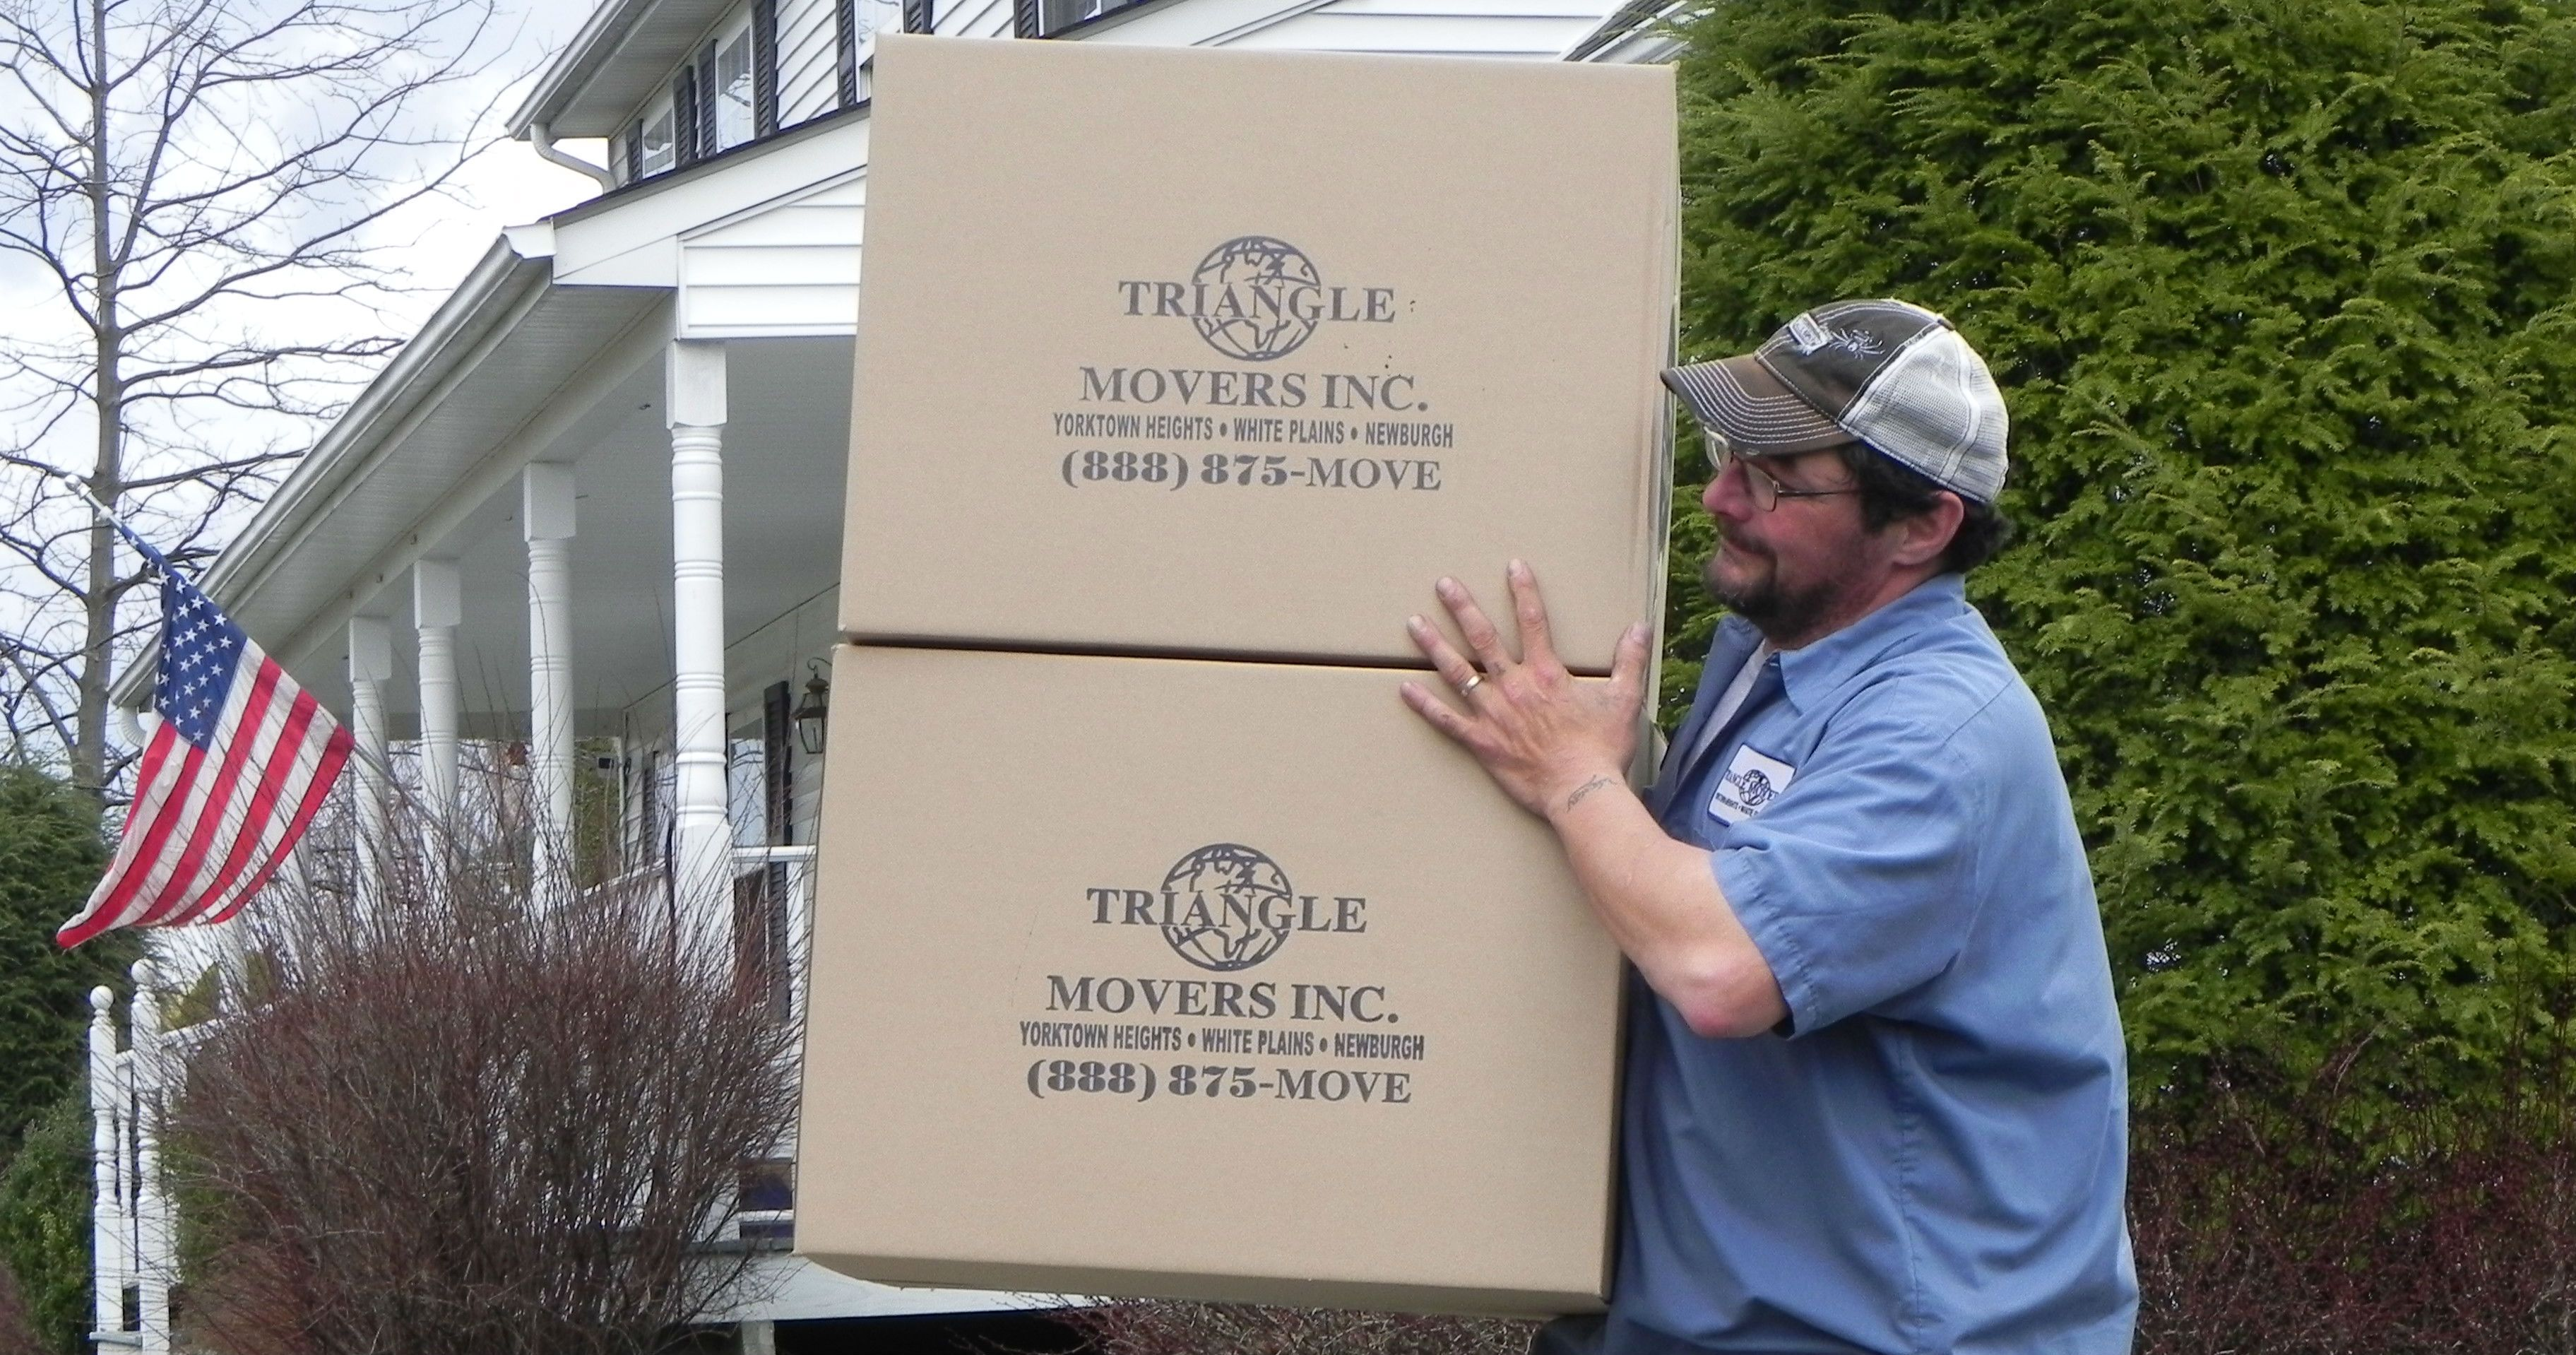 Triangle worker carrying a box